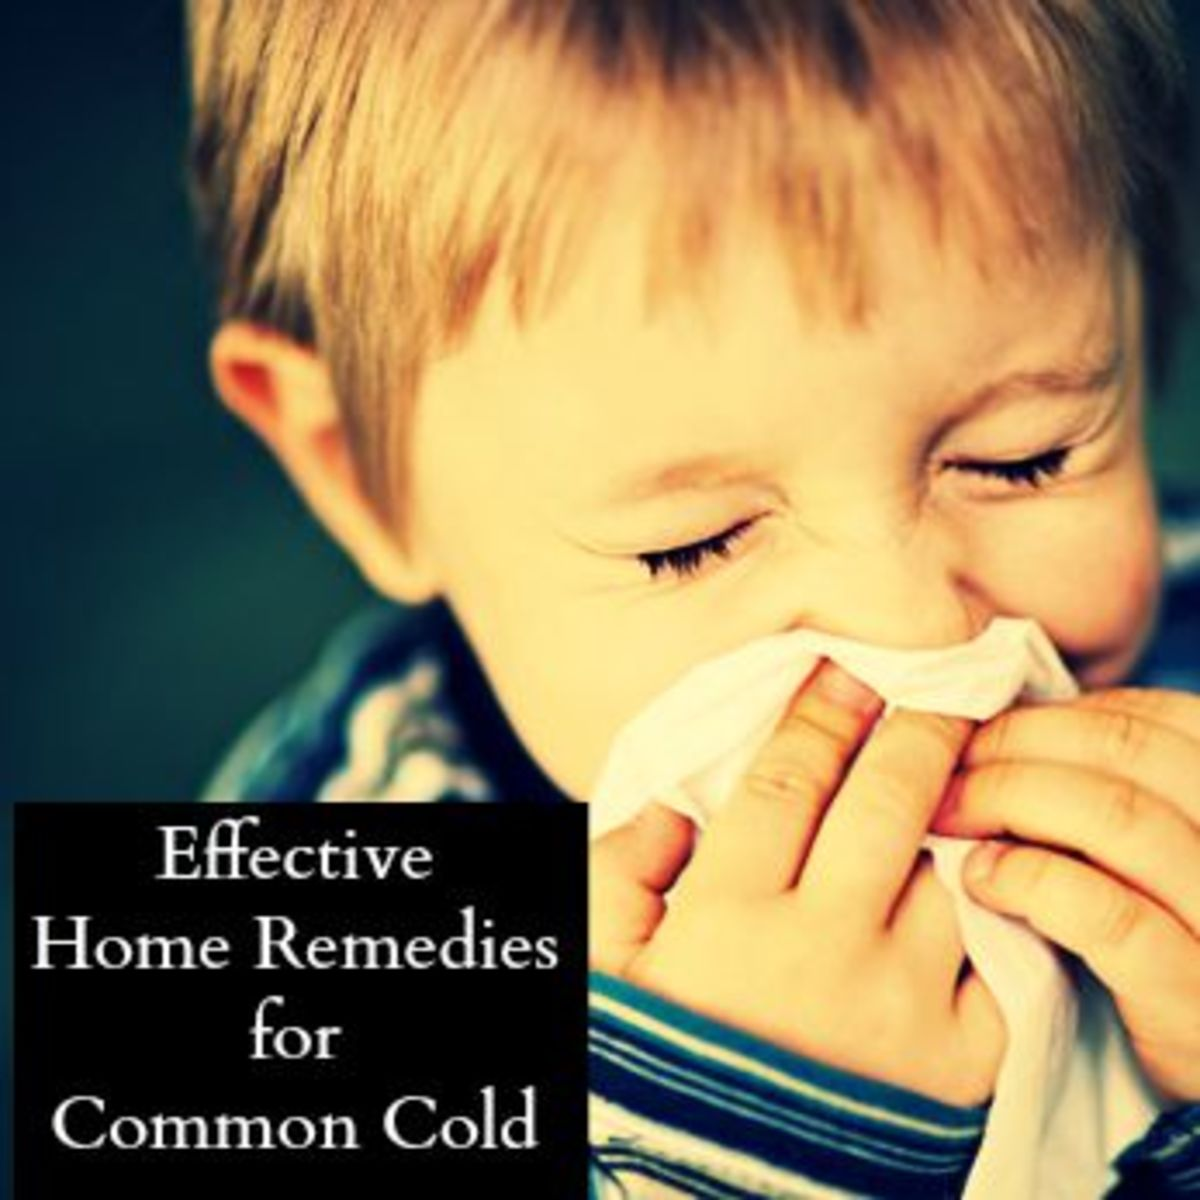 4 Home remedies for stuffy nose, common cold